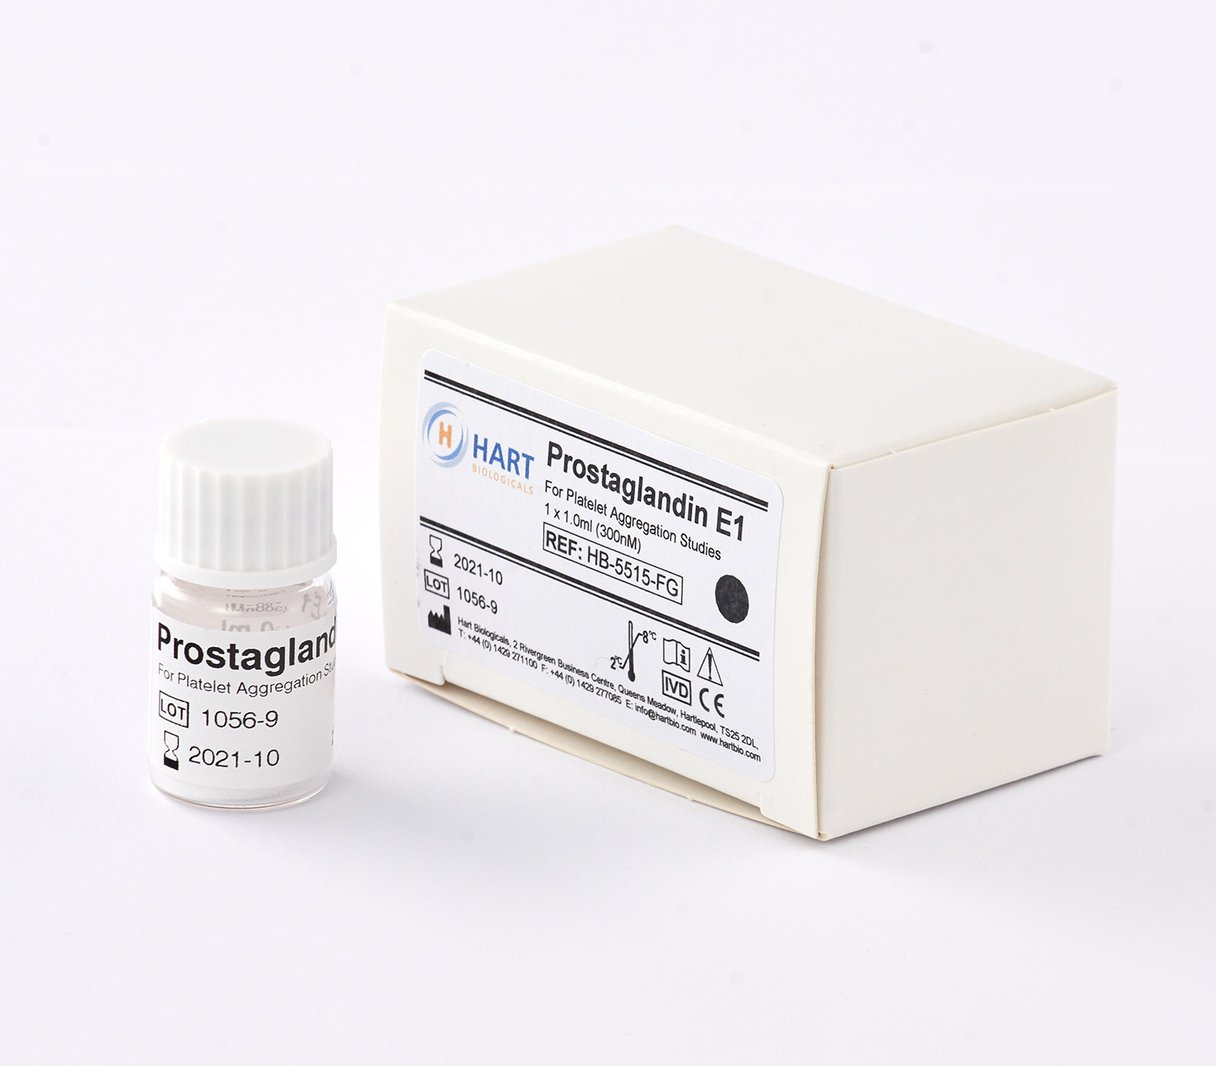 Prostaglandin E1 300nM - 1 x 1.0ml